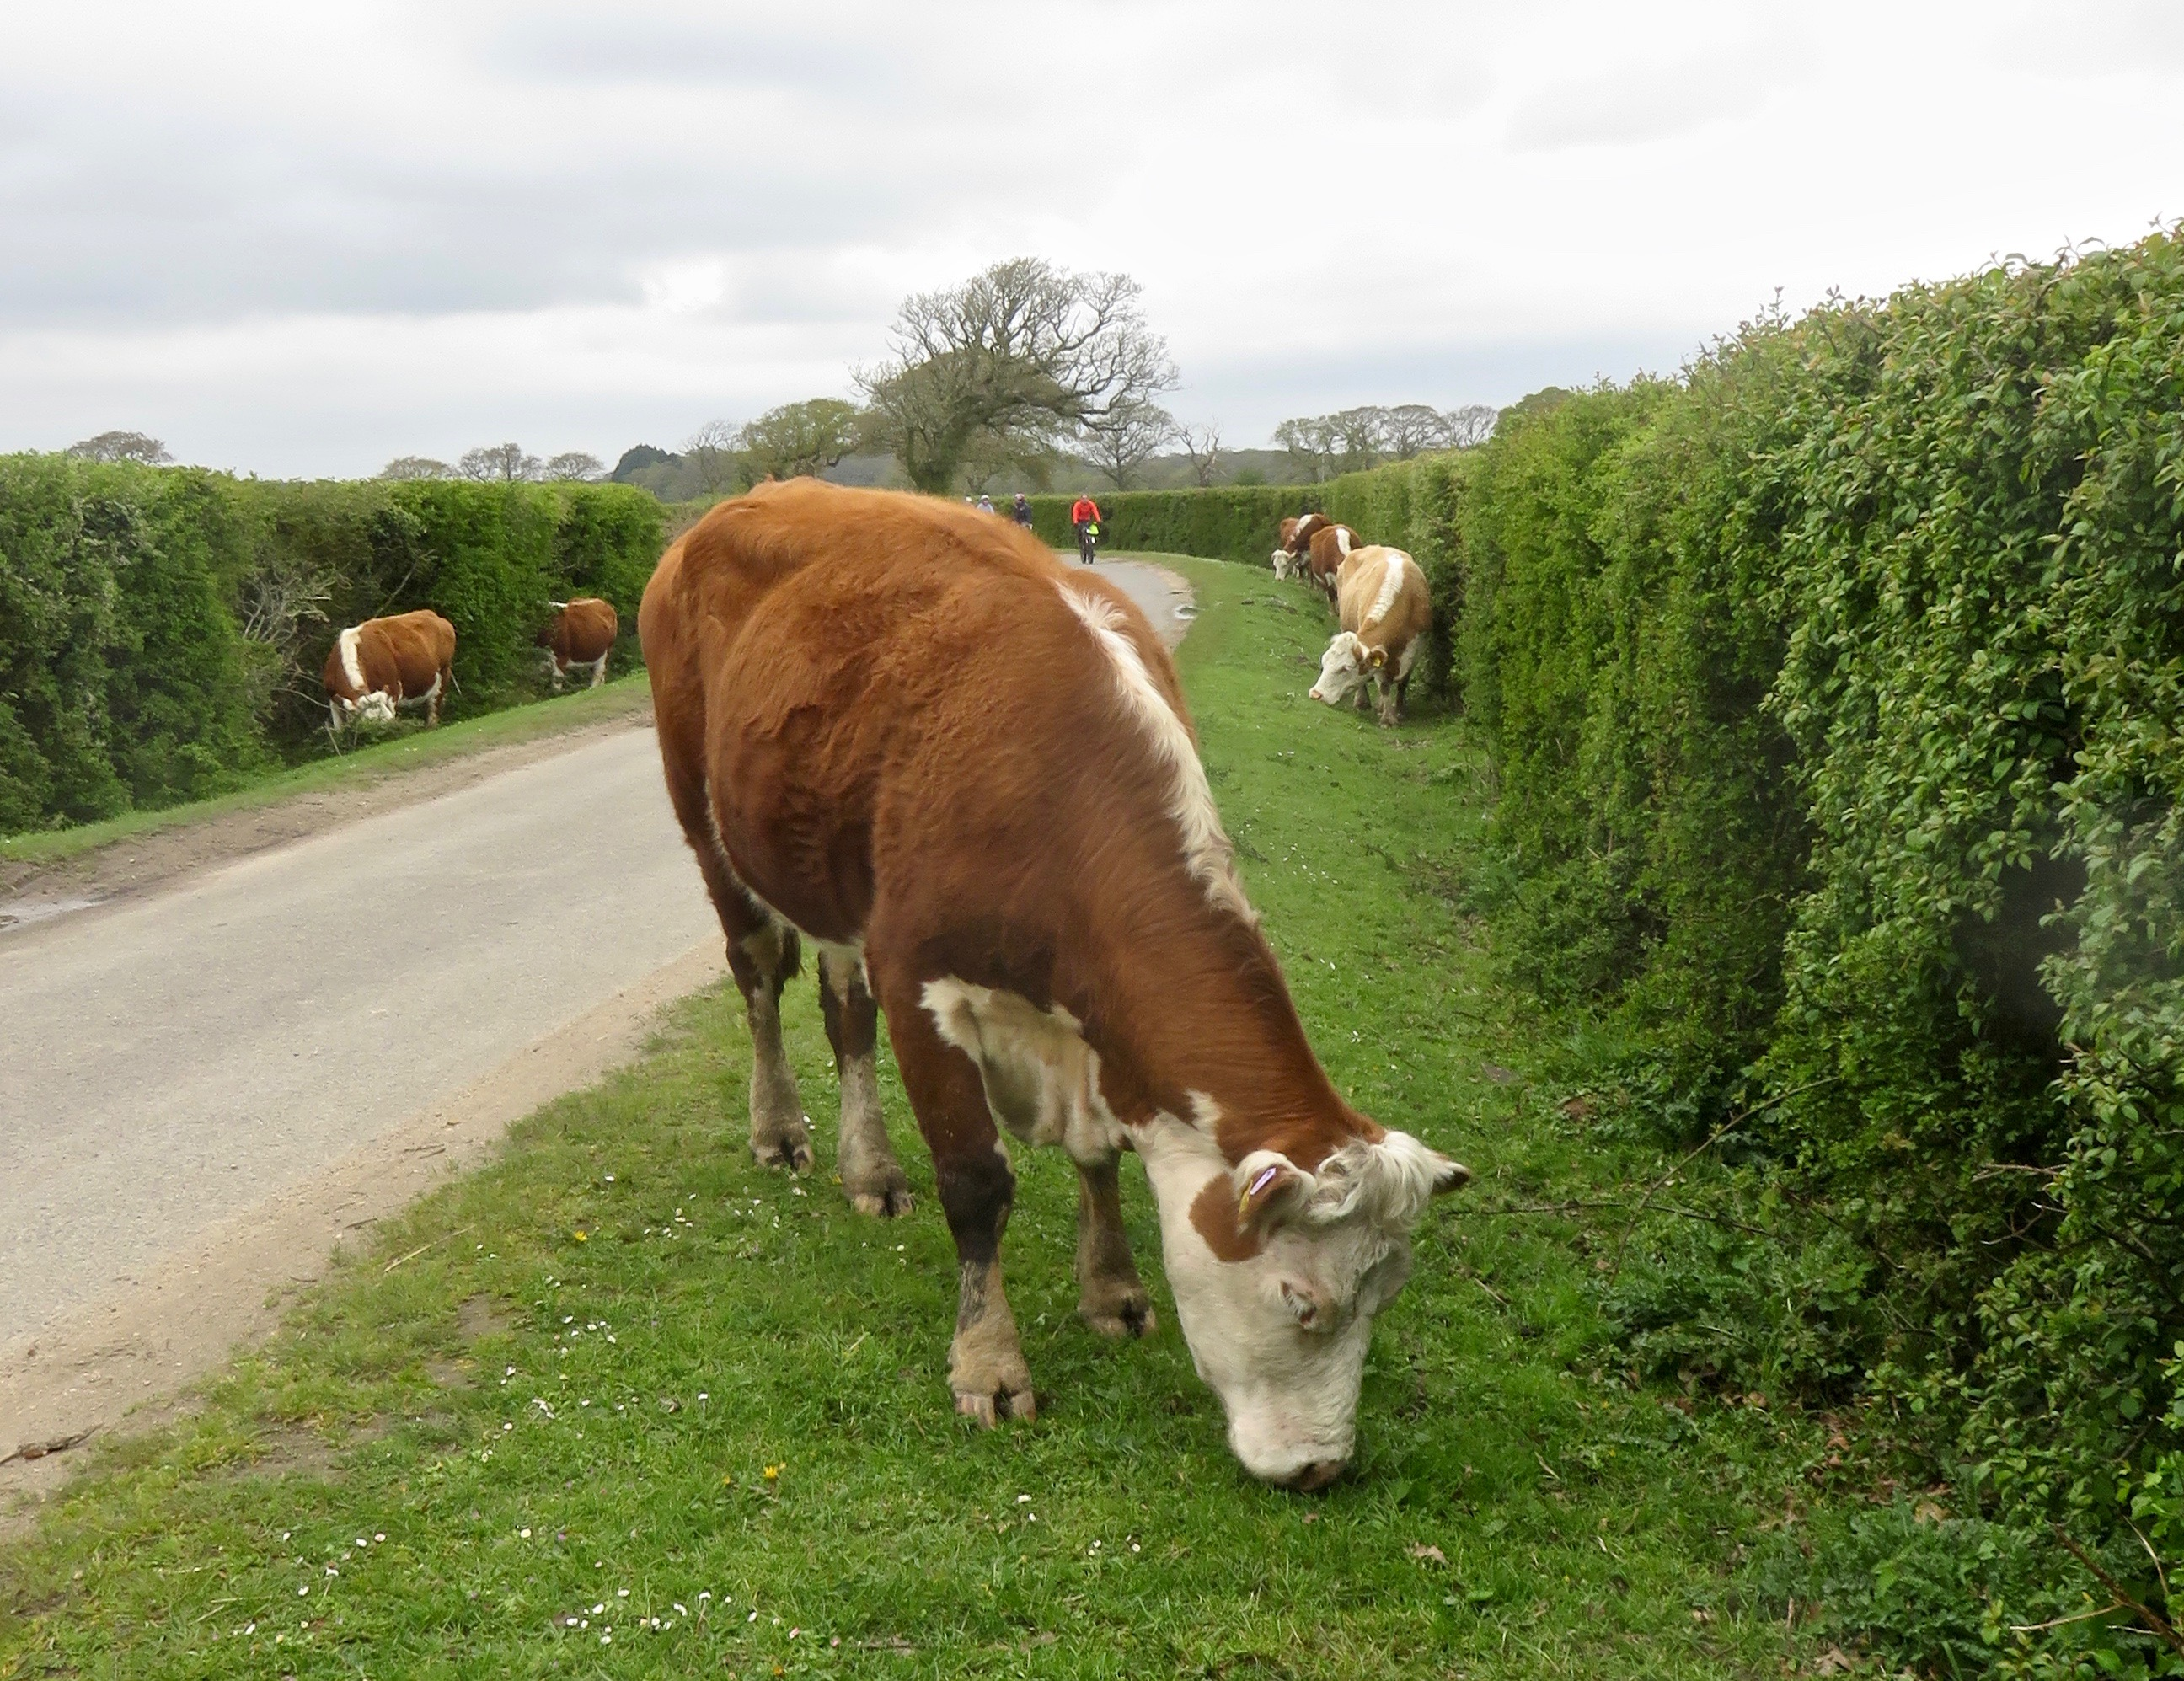 Cattle on verges, cyclists